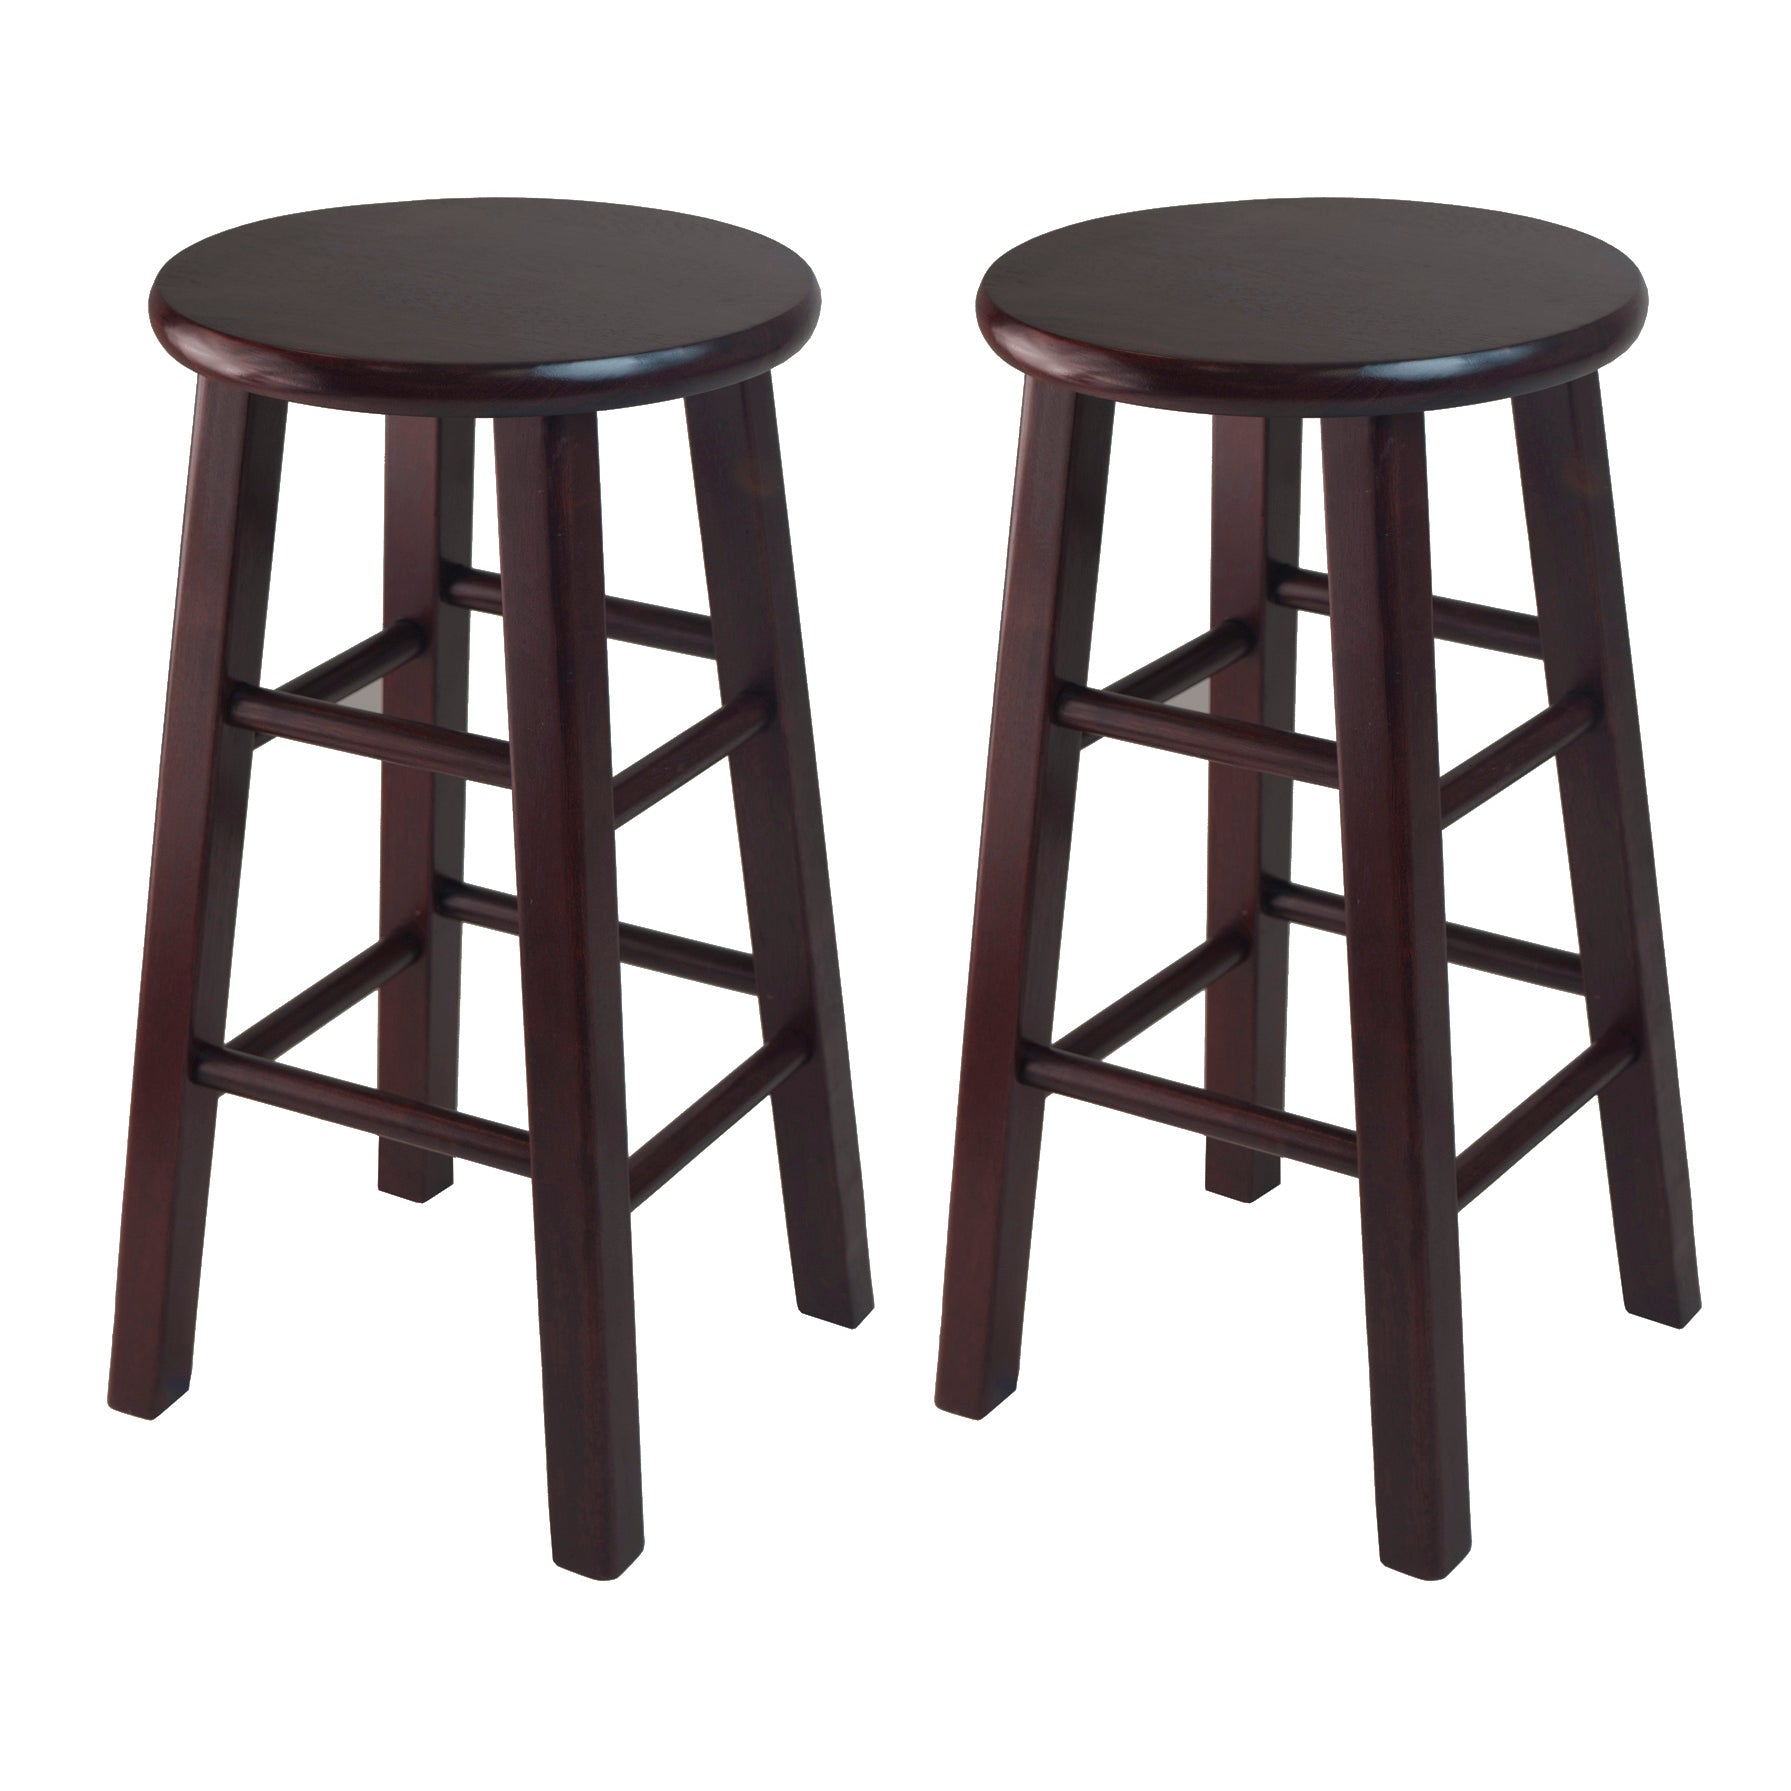 "Pacey 2-Pc 24"" Bar Stool Set Espresso - Pot Racks Plus"